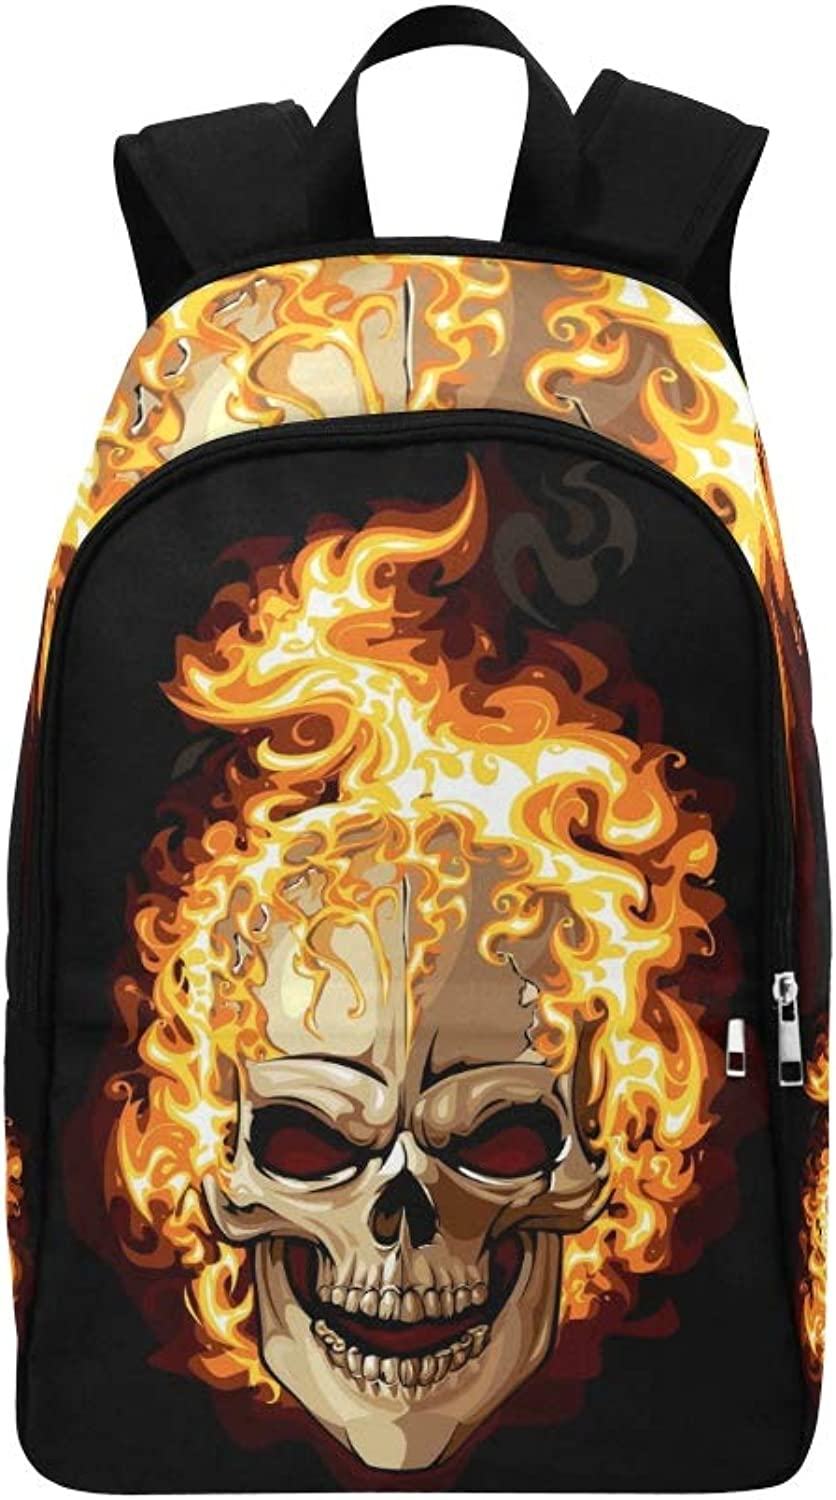 Burning Skull On Black Tattoo Casual Daypack Travel Bag College School Backpack for Mens and Women